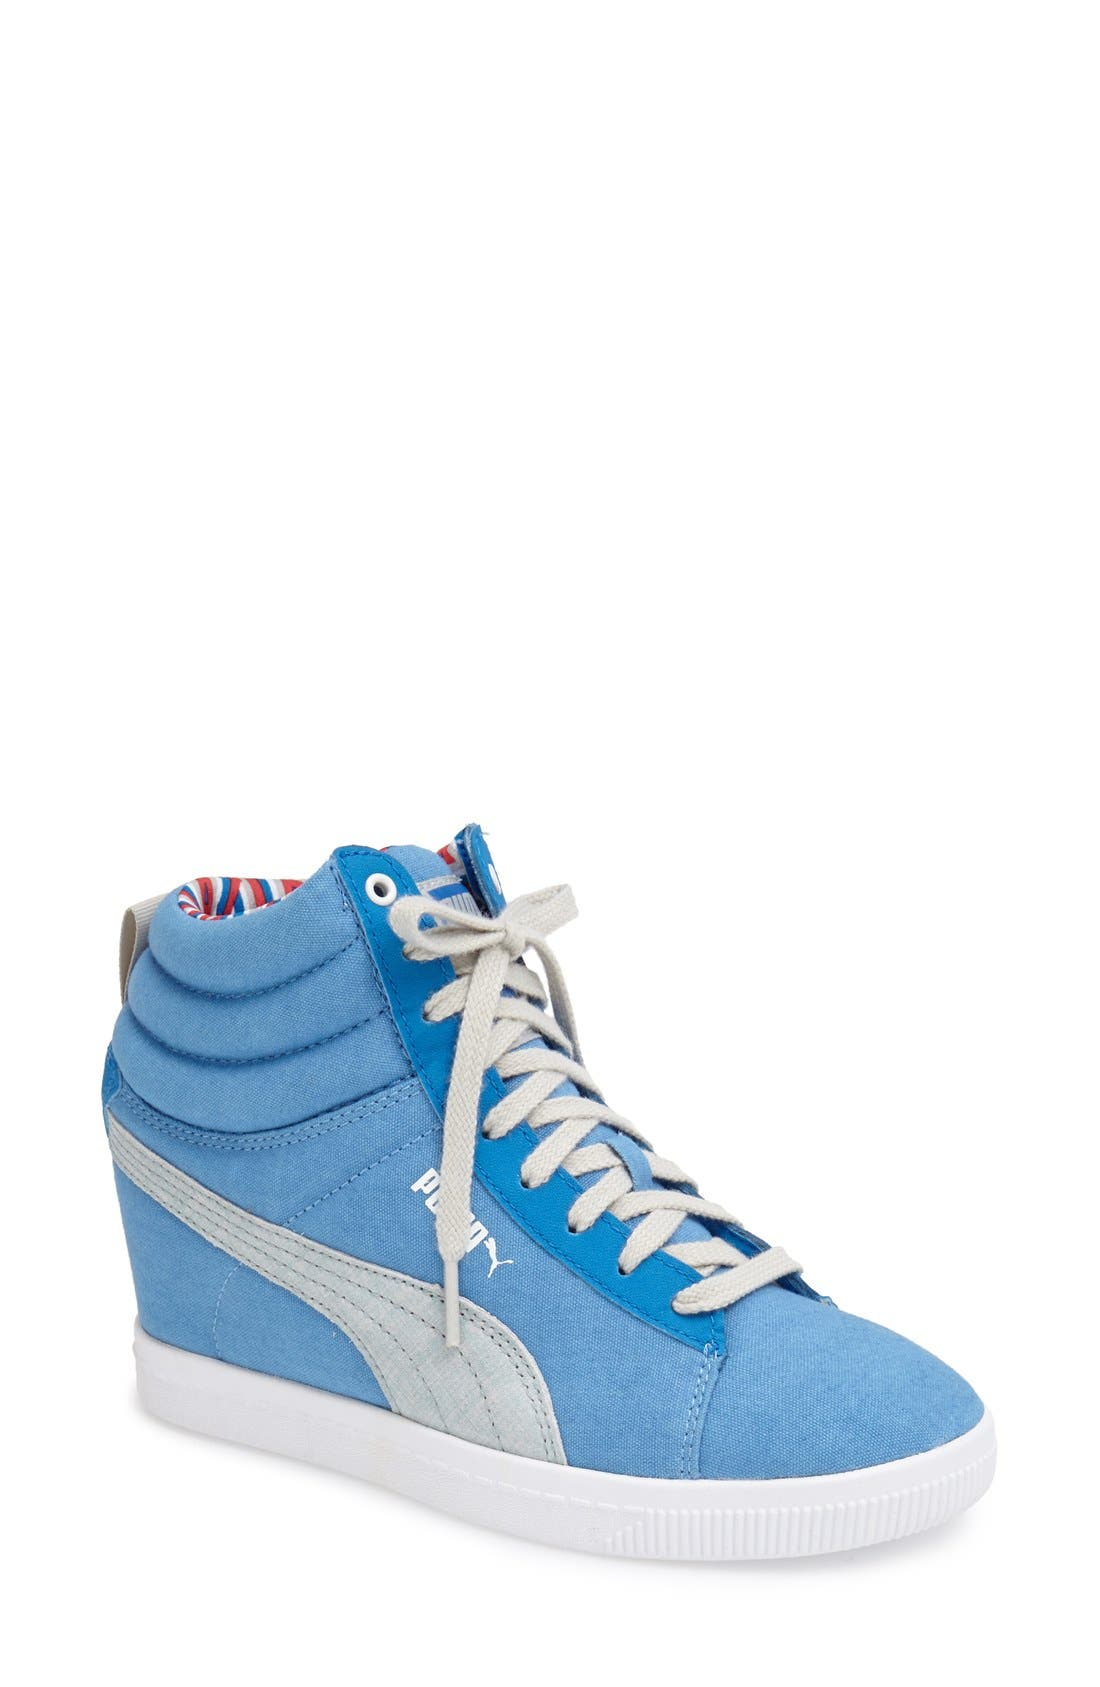 Alternate Image 1 Selected - PUMA 'Classic' Hidden Wedge Sneaker (Women)